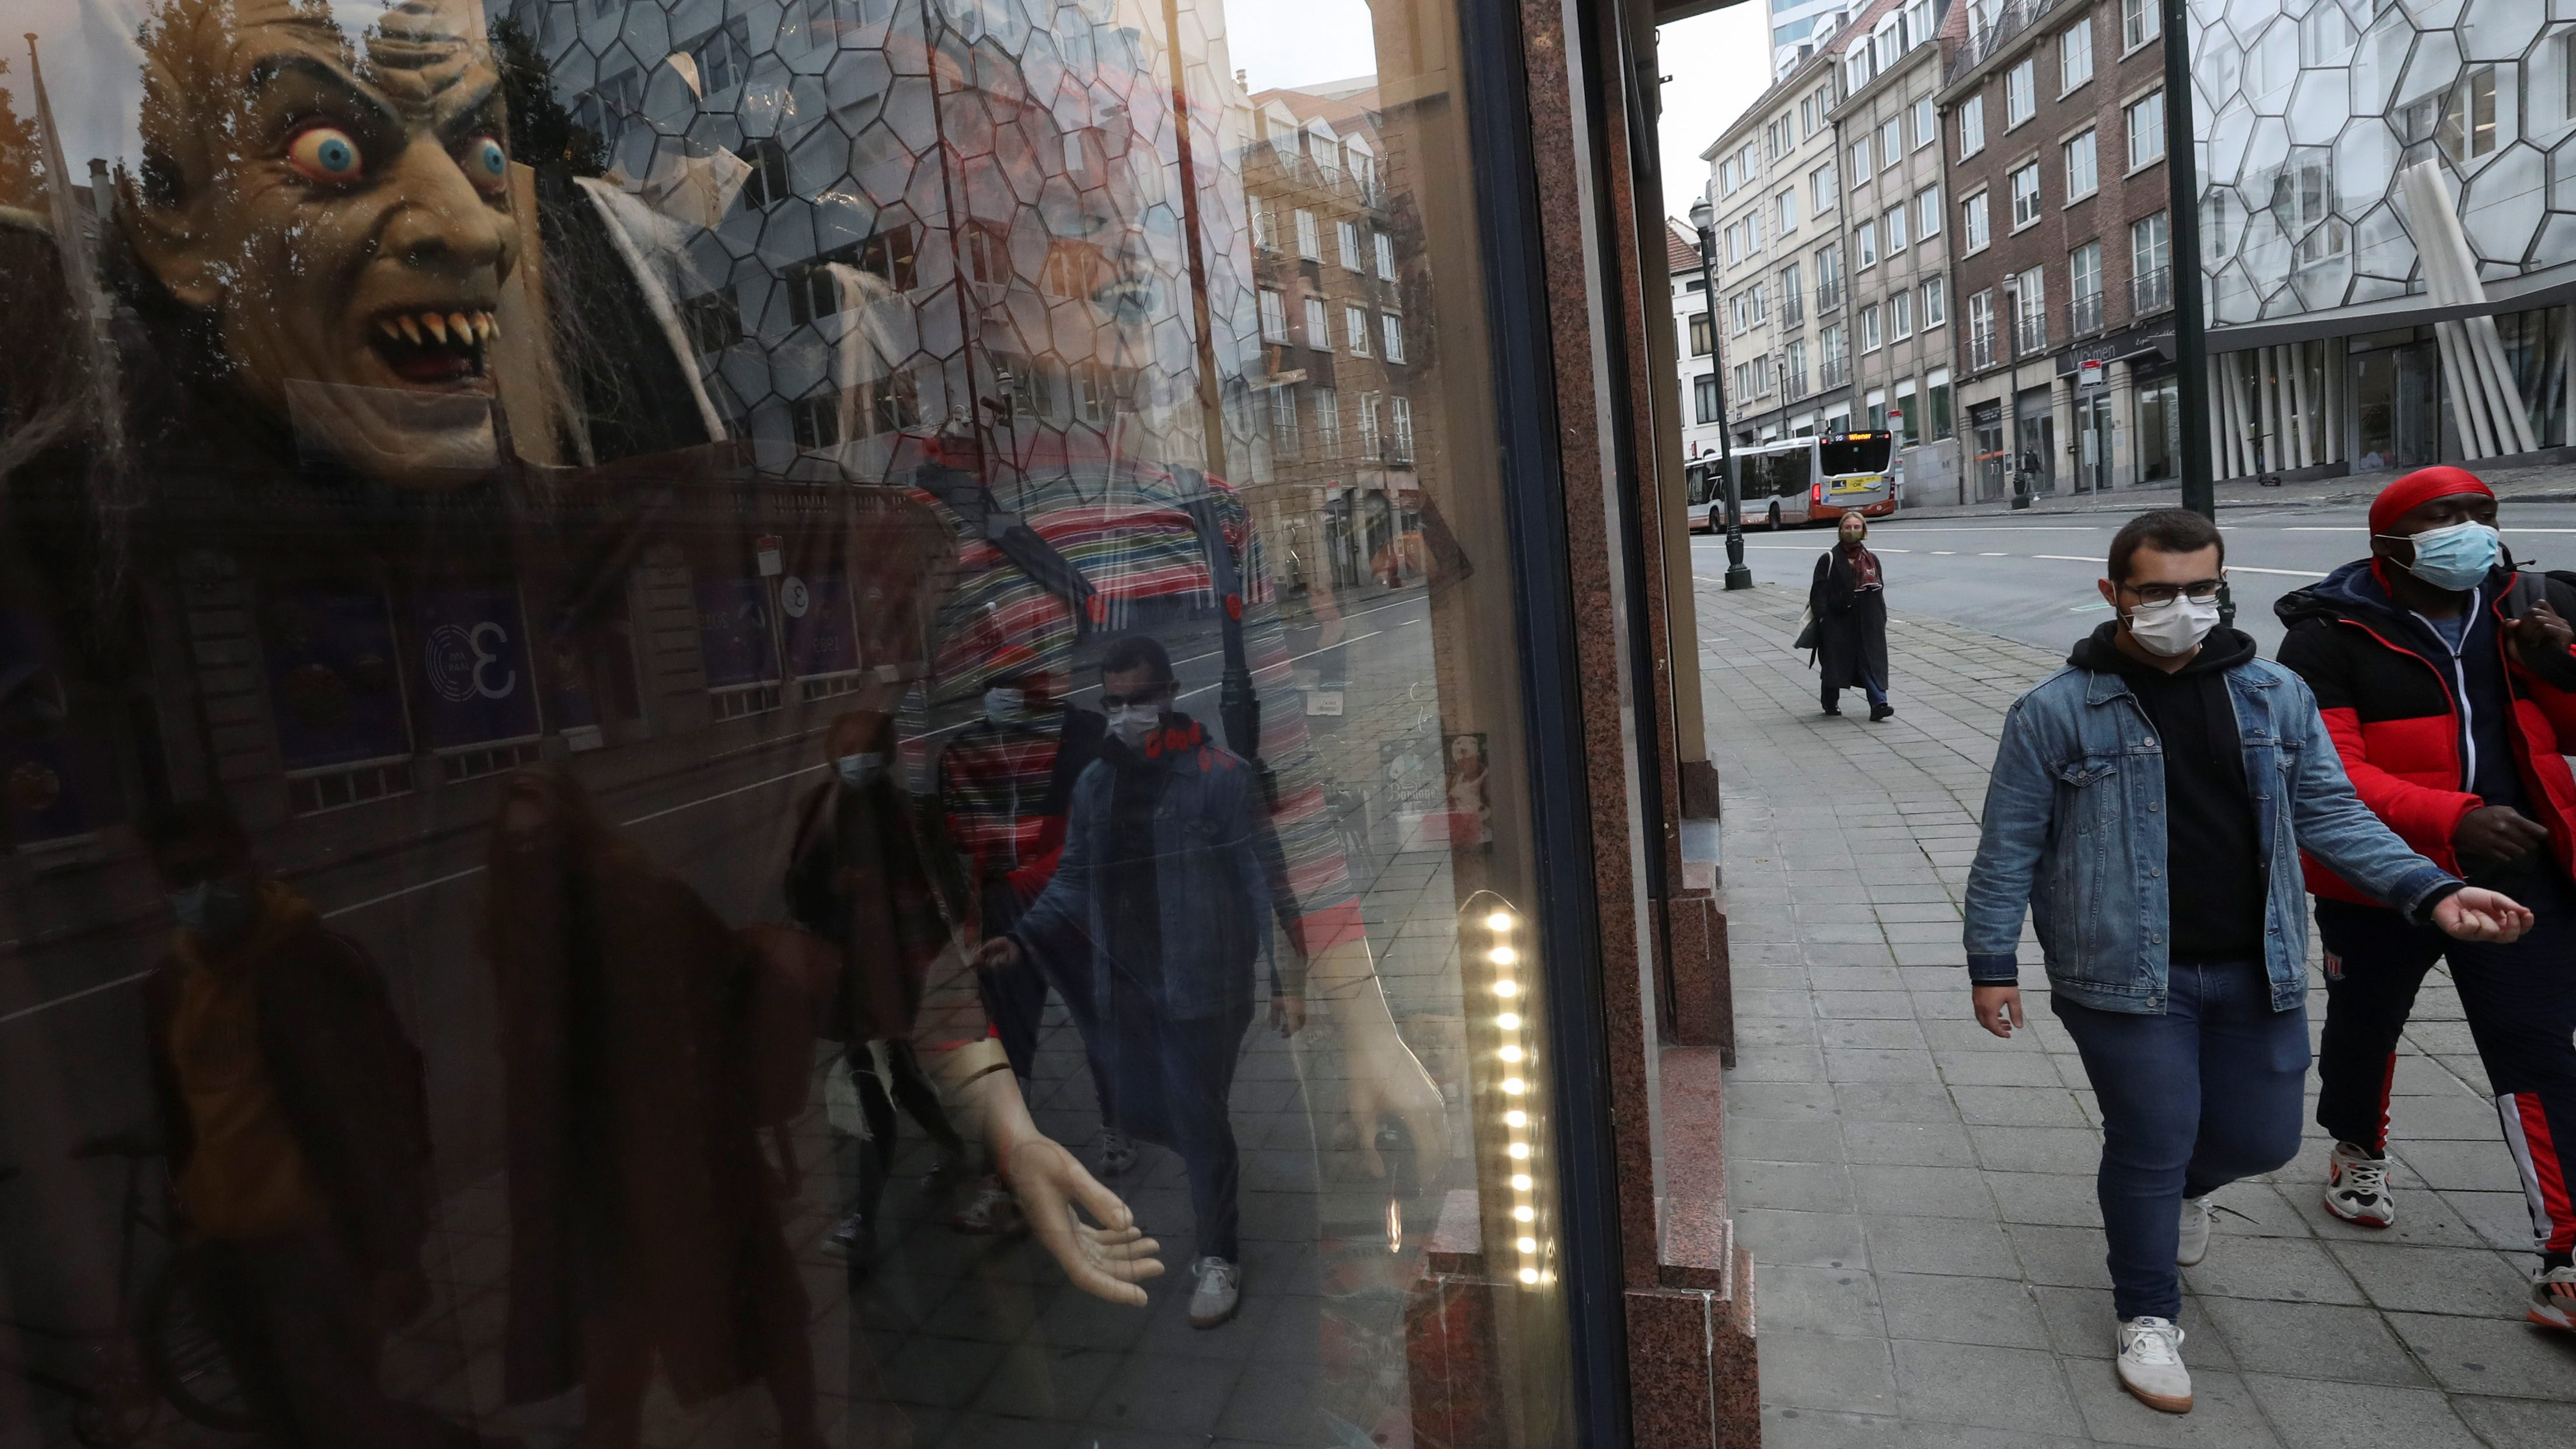 People wearing face masks walk past a store selling Halloween costumes near Brussels' Grand Place square, as the spread of the coronavirus disease (COVID-19) continues, in Belgium, October 13, 2020.